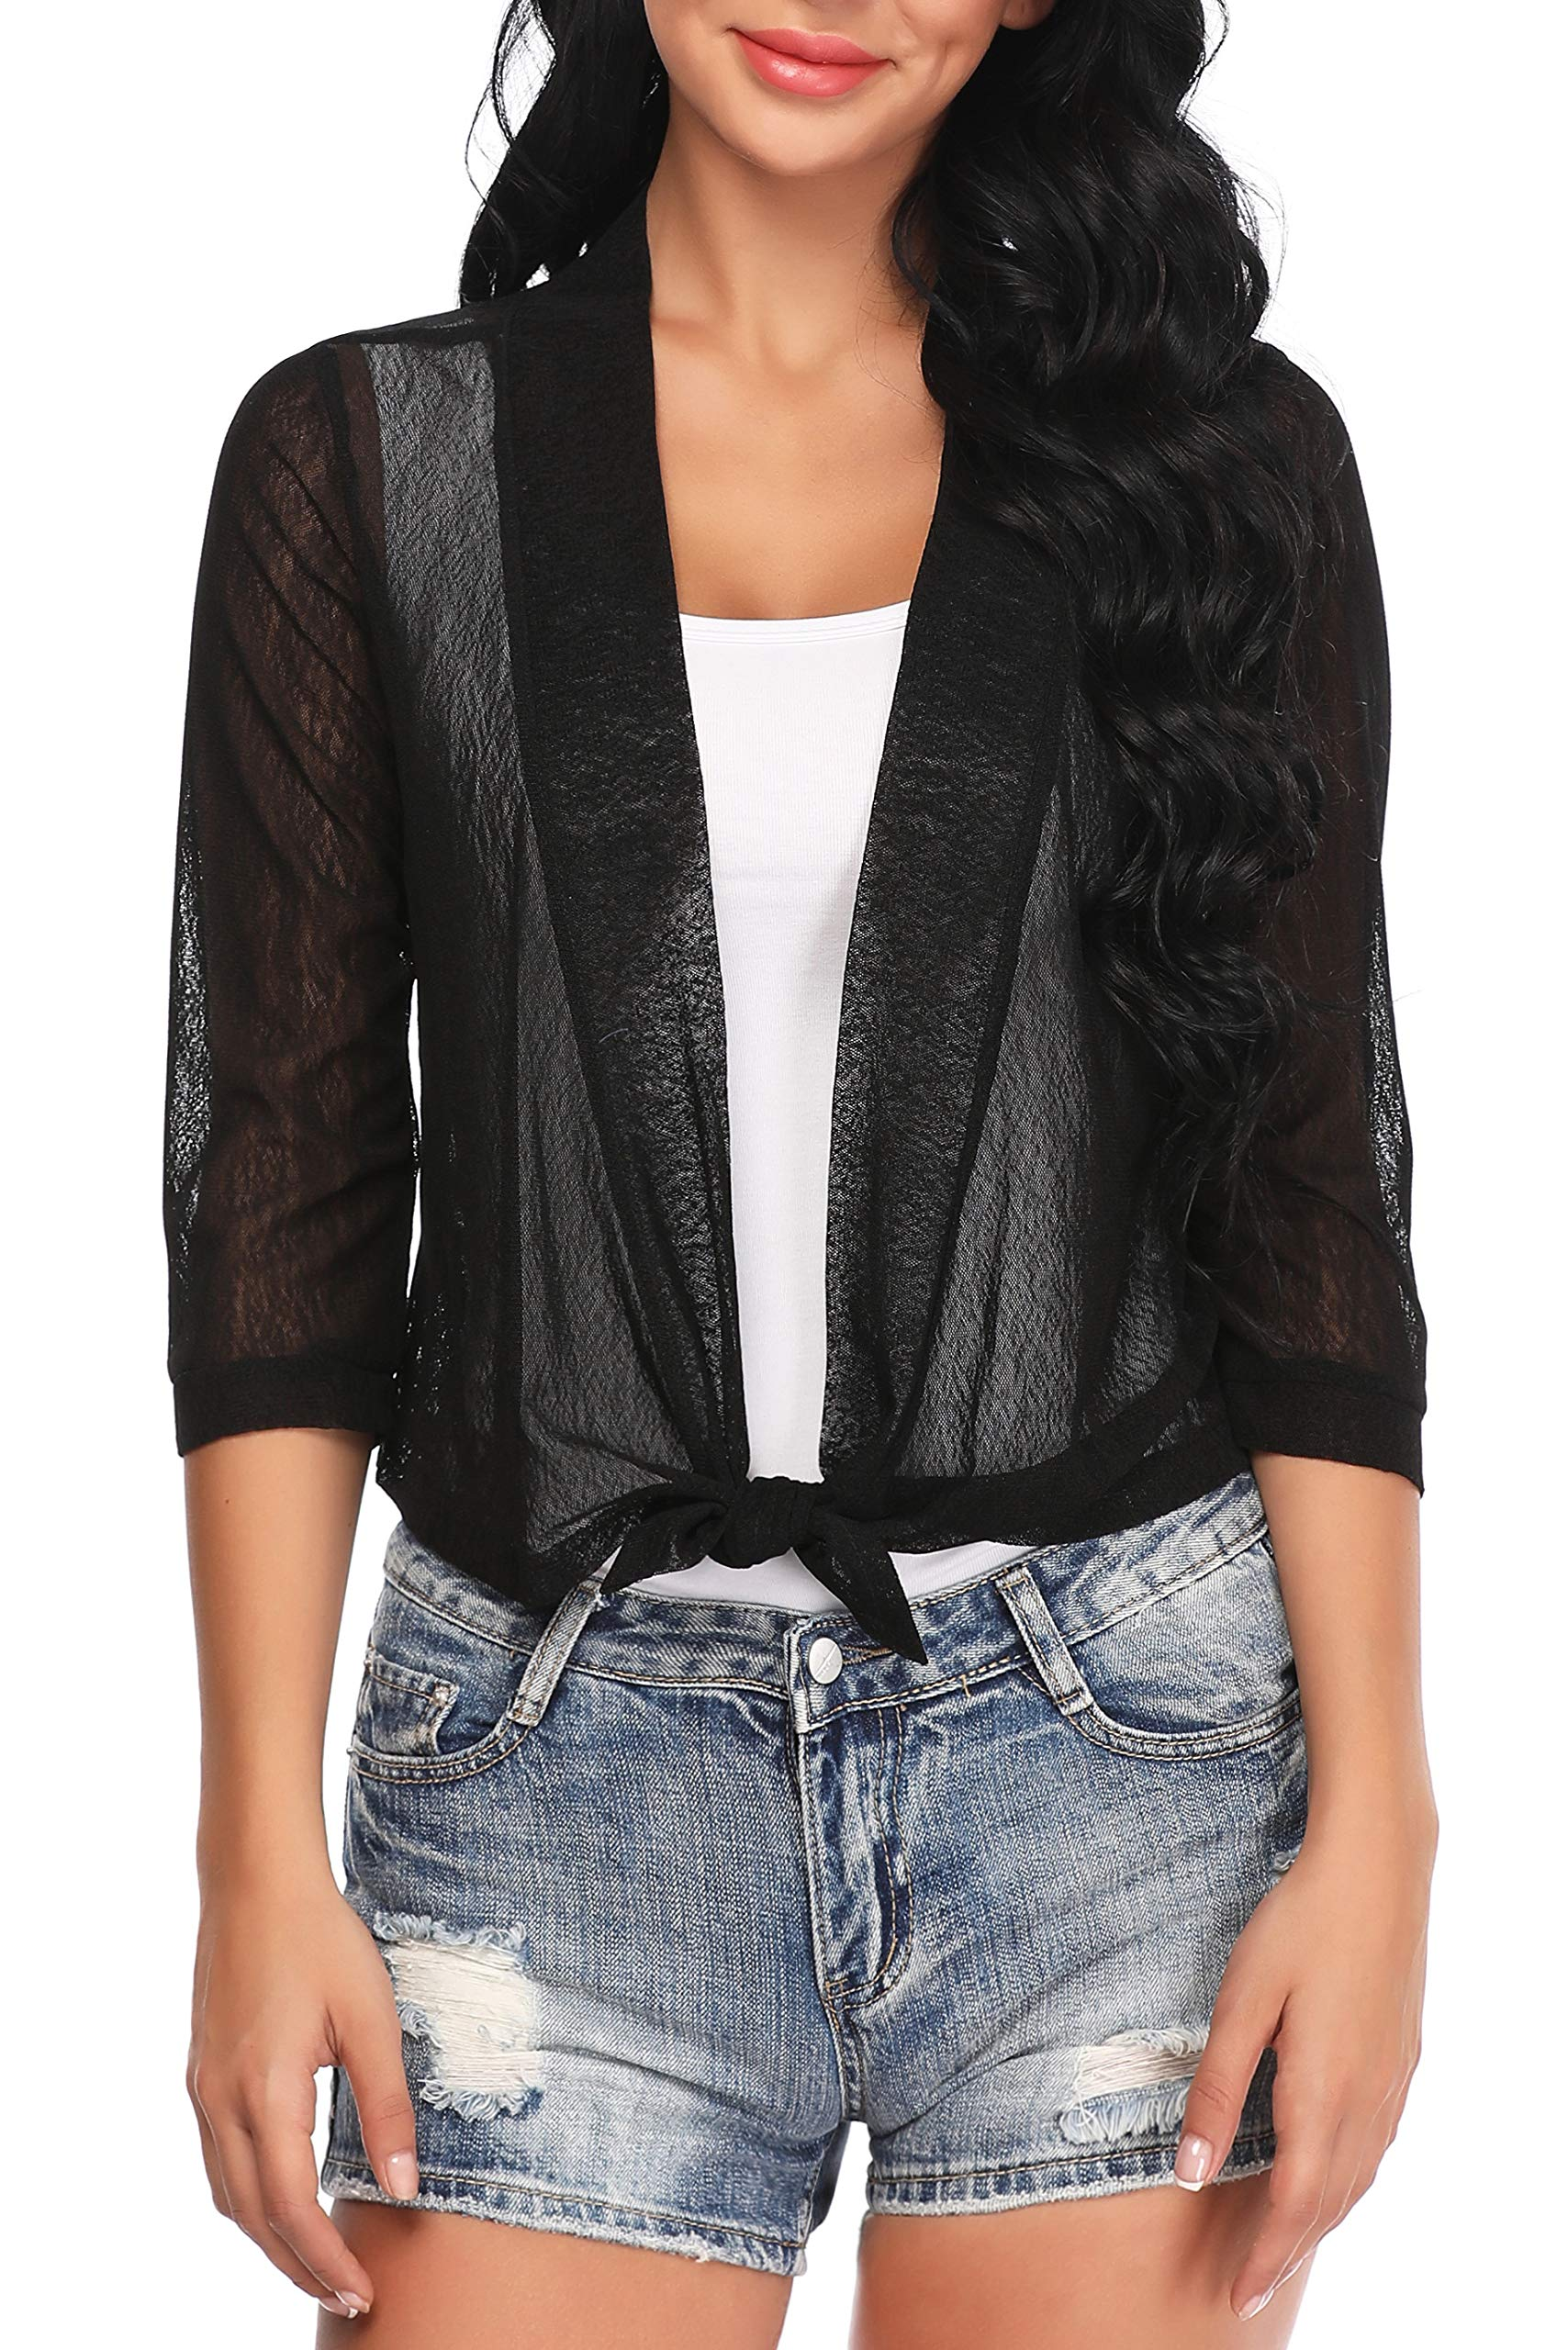 Aranmei Womens Sheer Shrug Cardigan Tie Front 3/4 Sleeve Bolero Jacket(Black, X-Large)